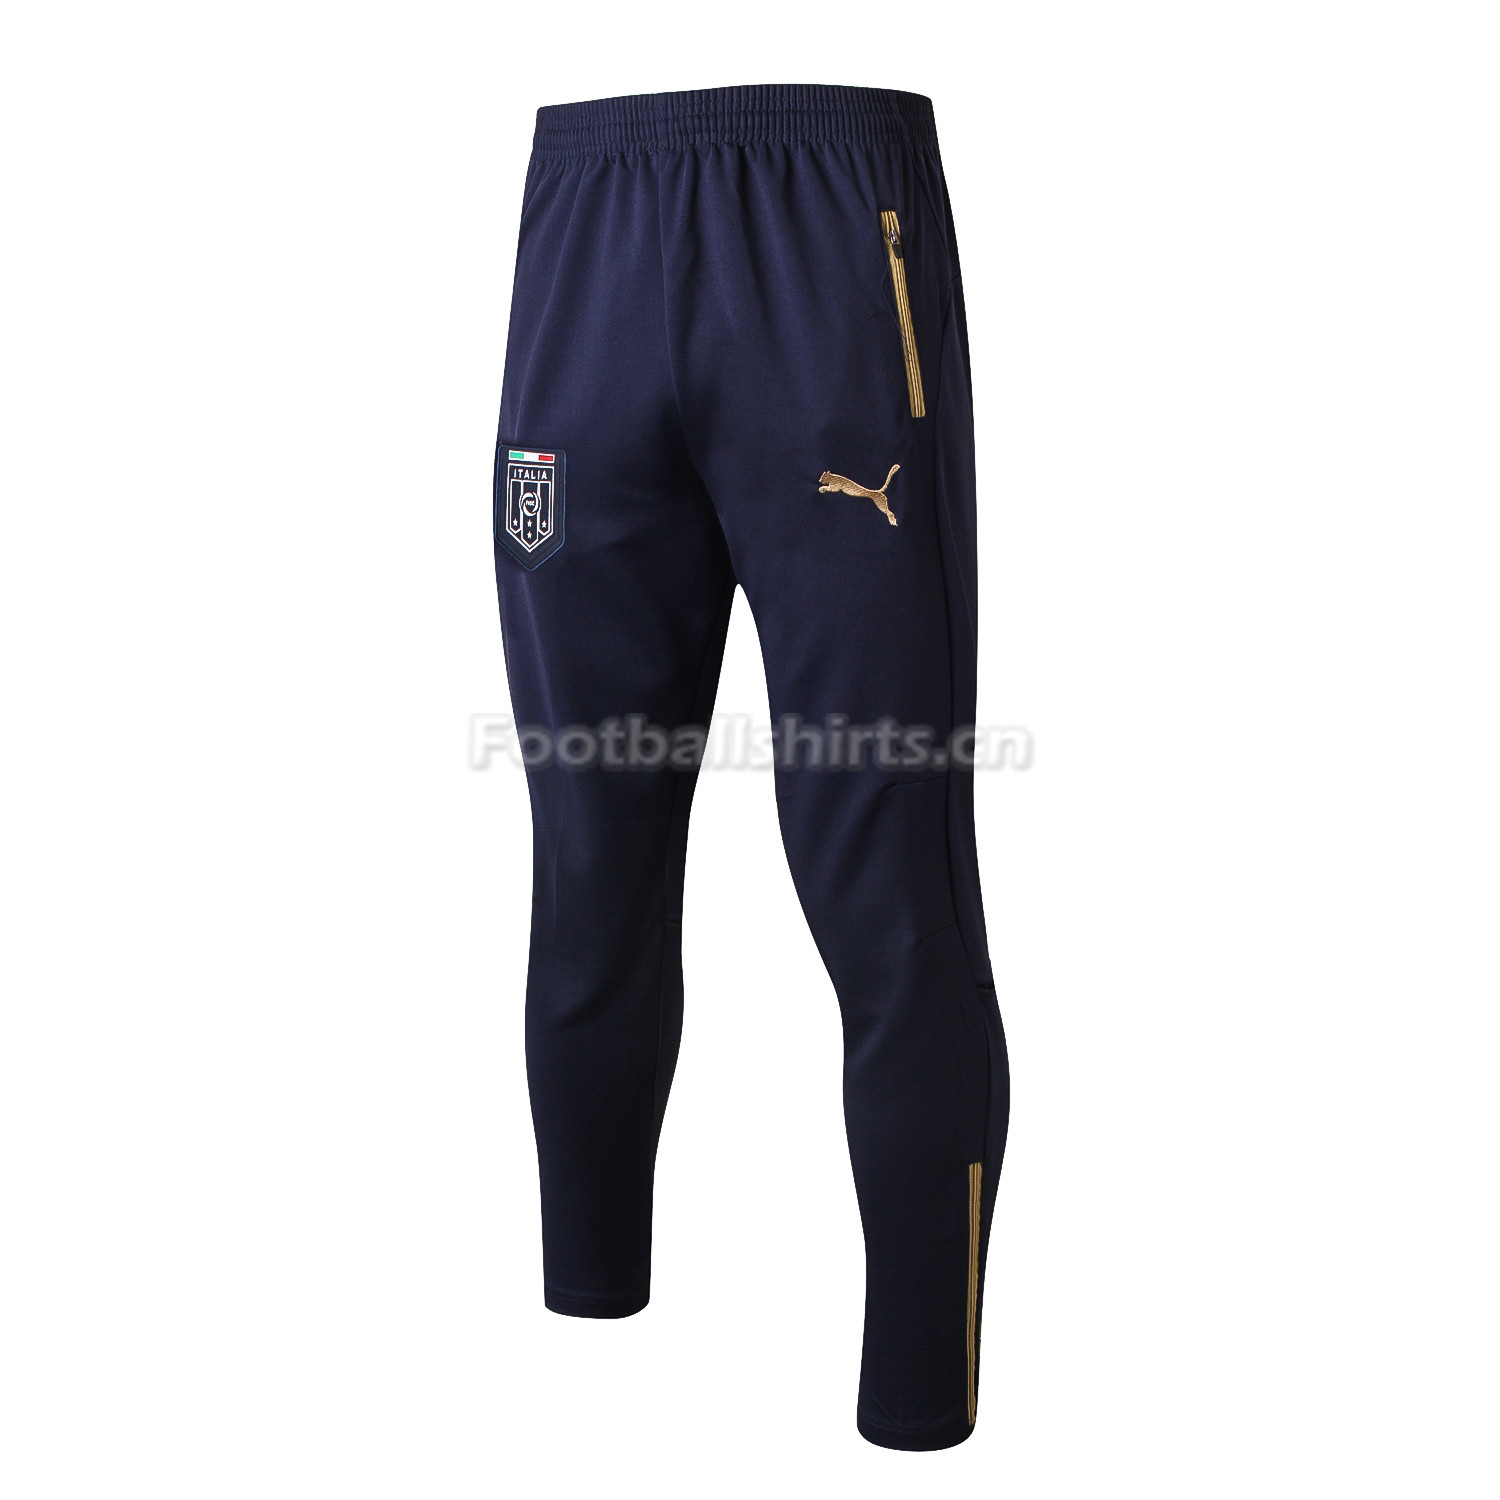 Italy Black Training Pants (Trousers) 2017/18